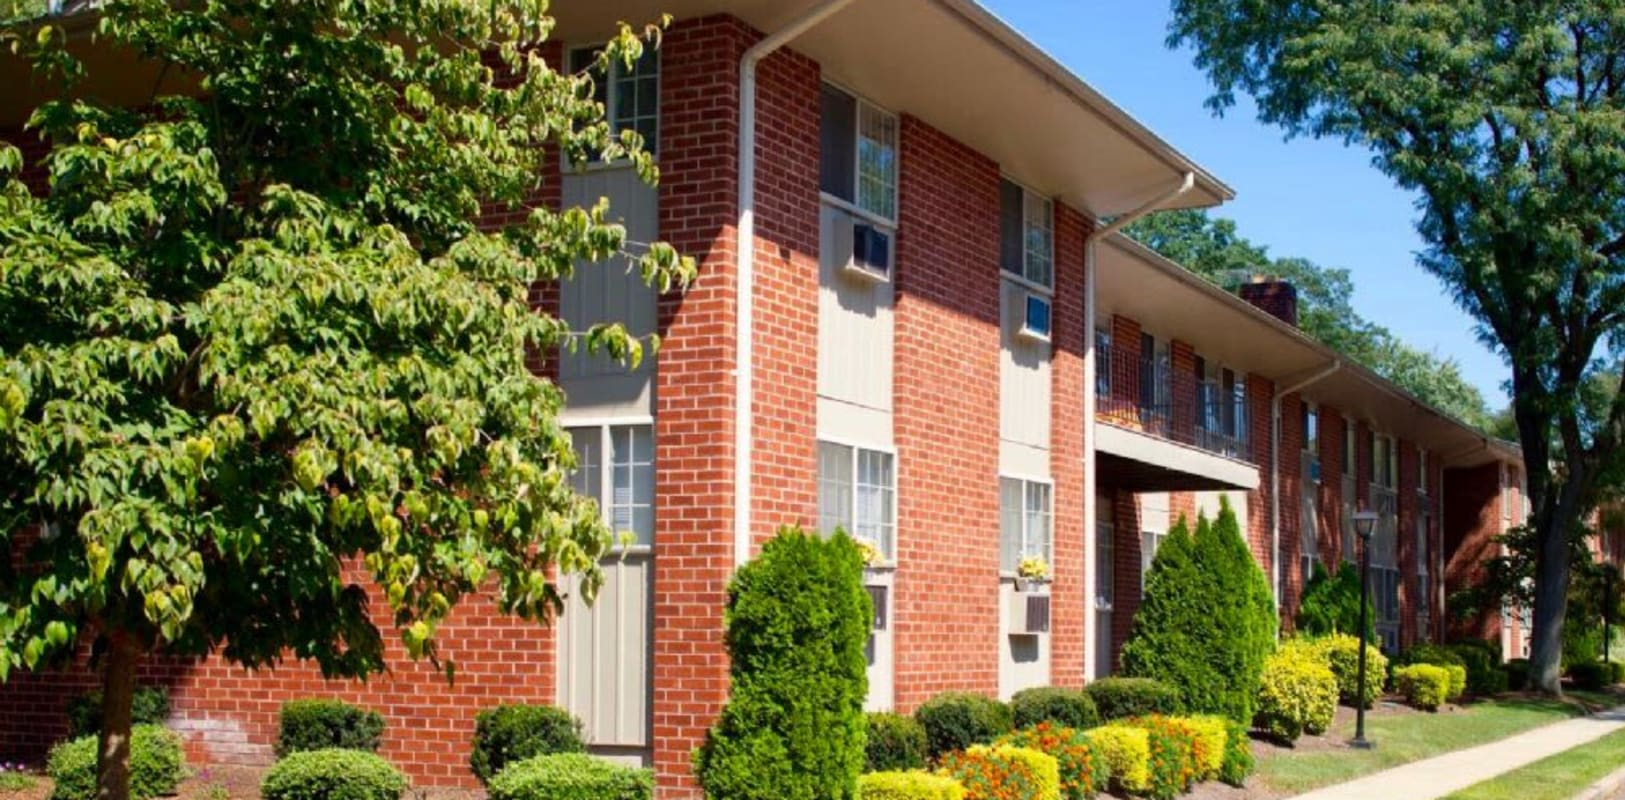 Exterior walkway with lots of plants and a nice lawn at Versailles Apartments in Ewing, New Jersey